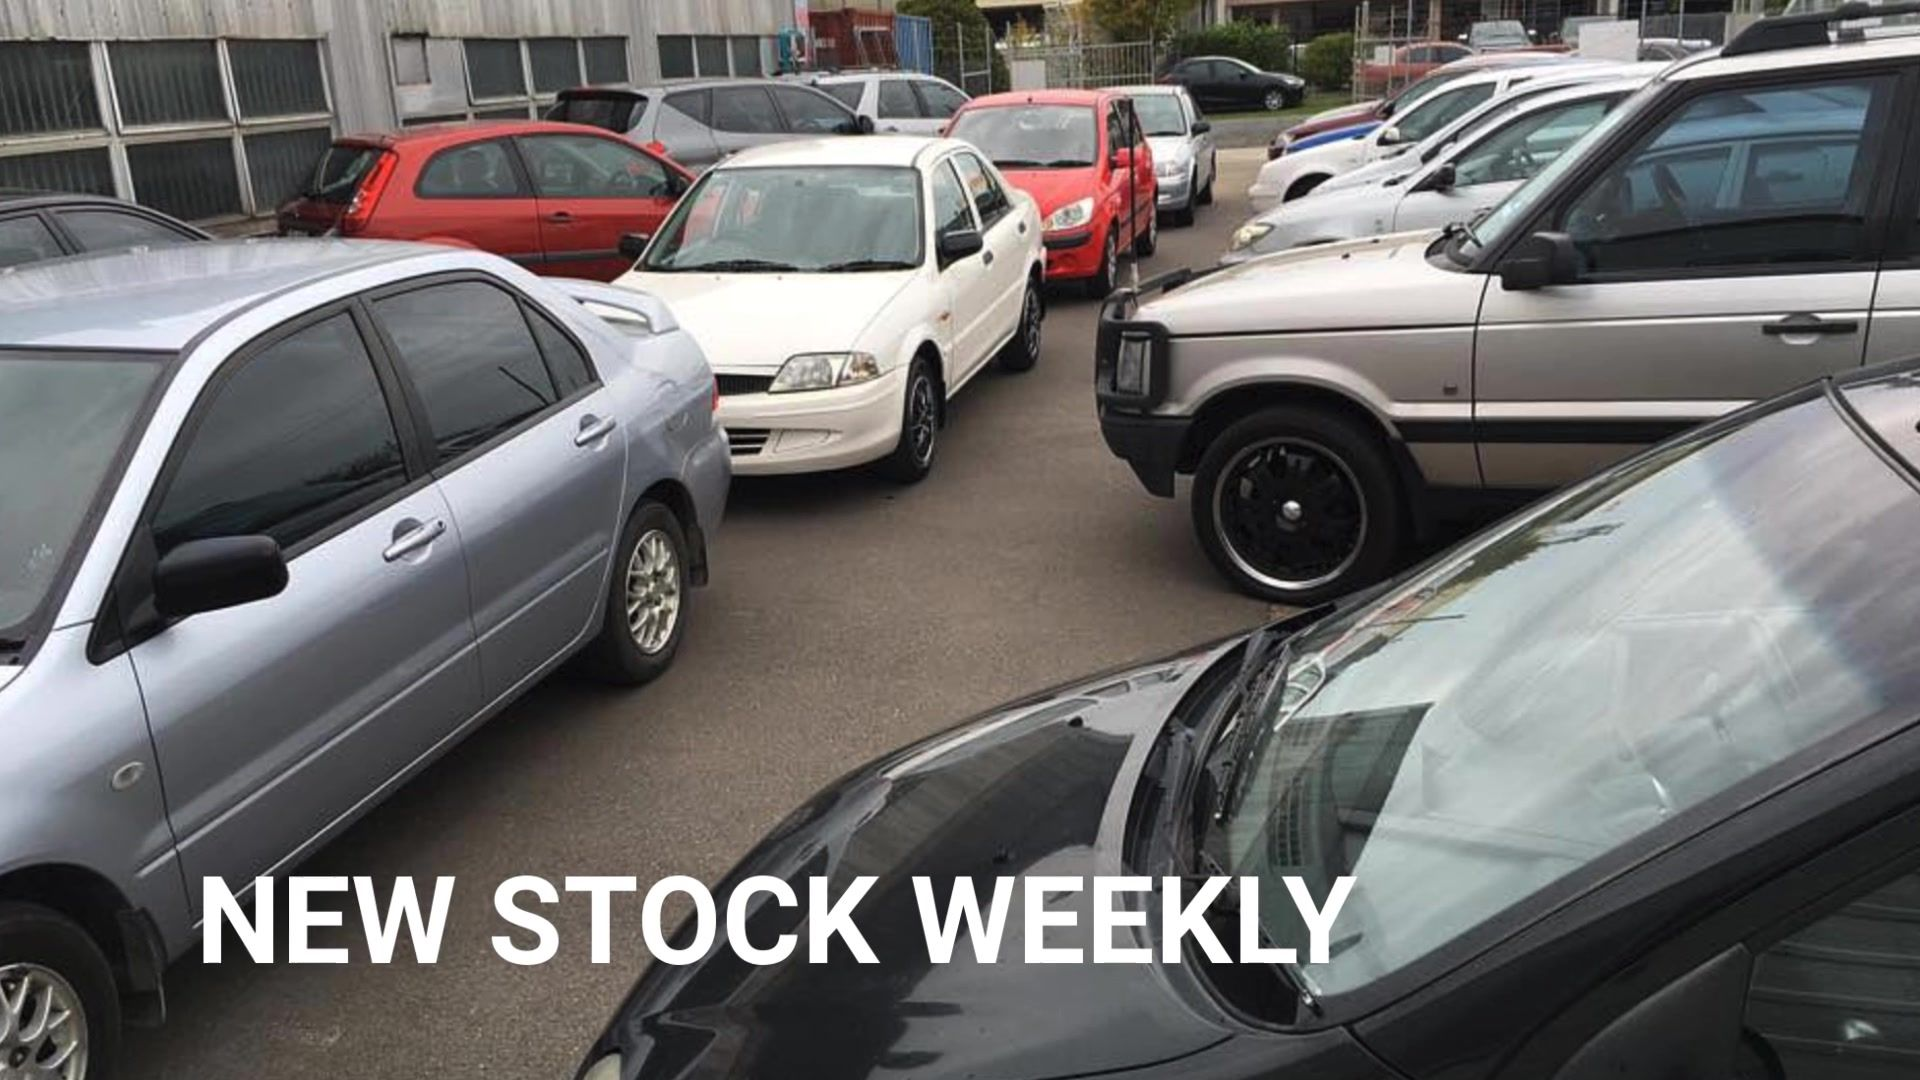 Cars from 2000 New Stock Weekly Cheap used cars, Cars